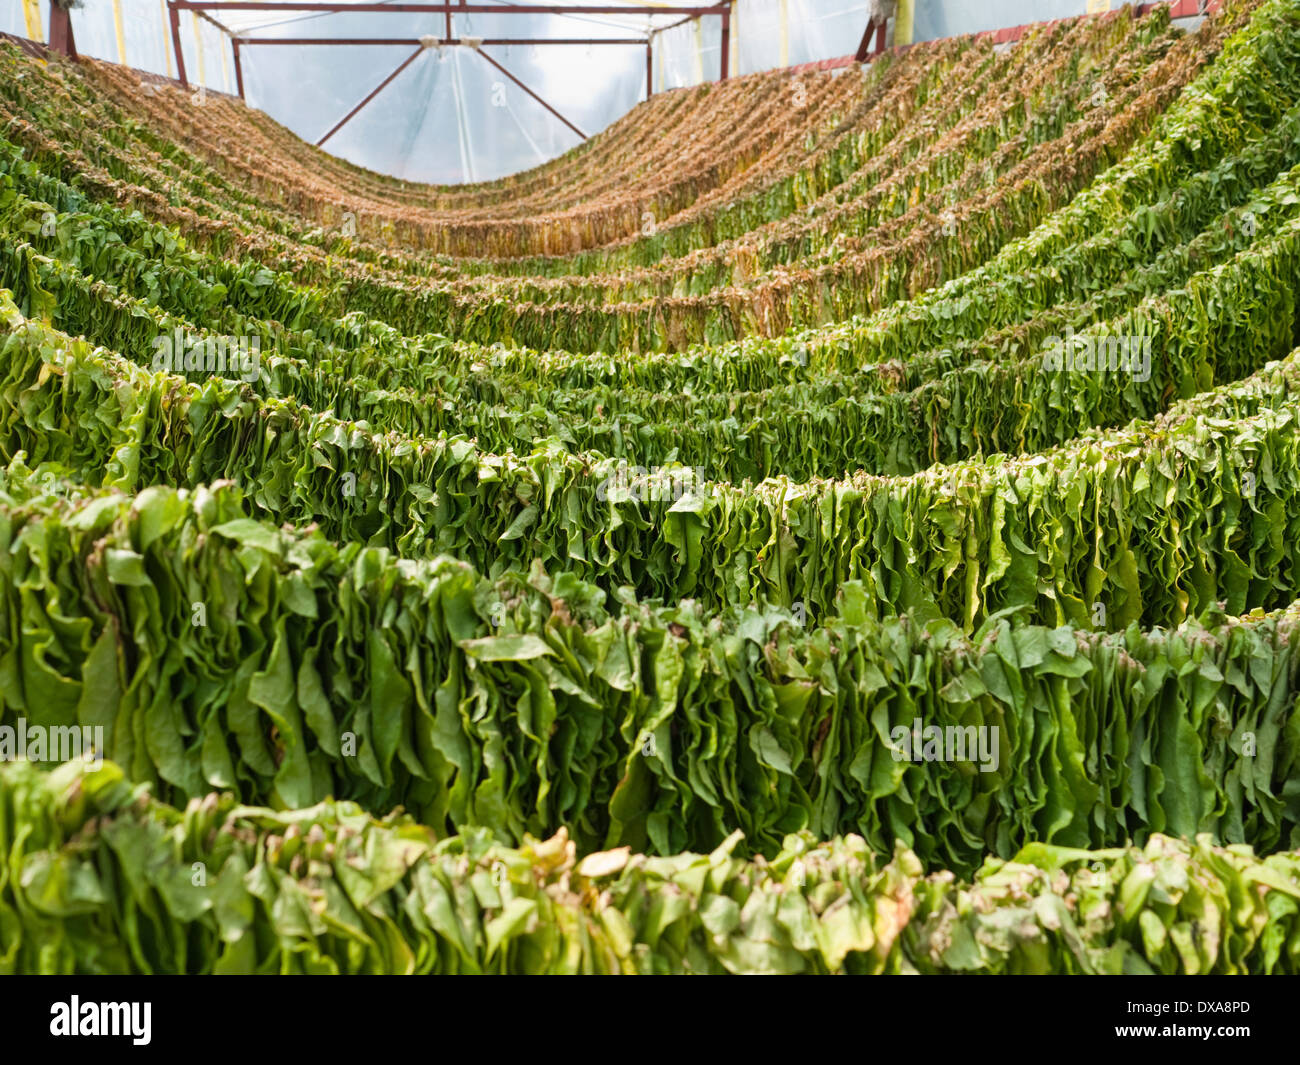 Tobacco leaves drying on a rack in the town of Prilep - centre of the main tobacco growing region in Macedonia - Stock Image